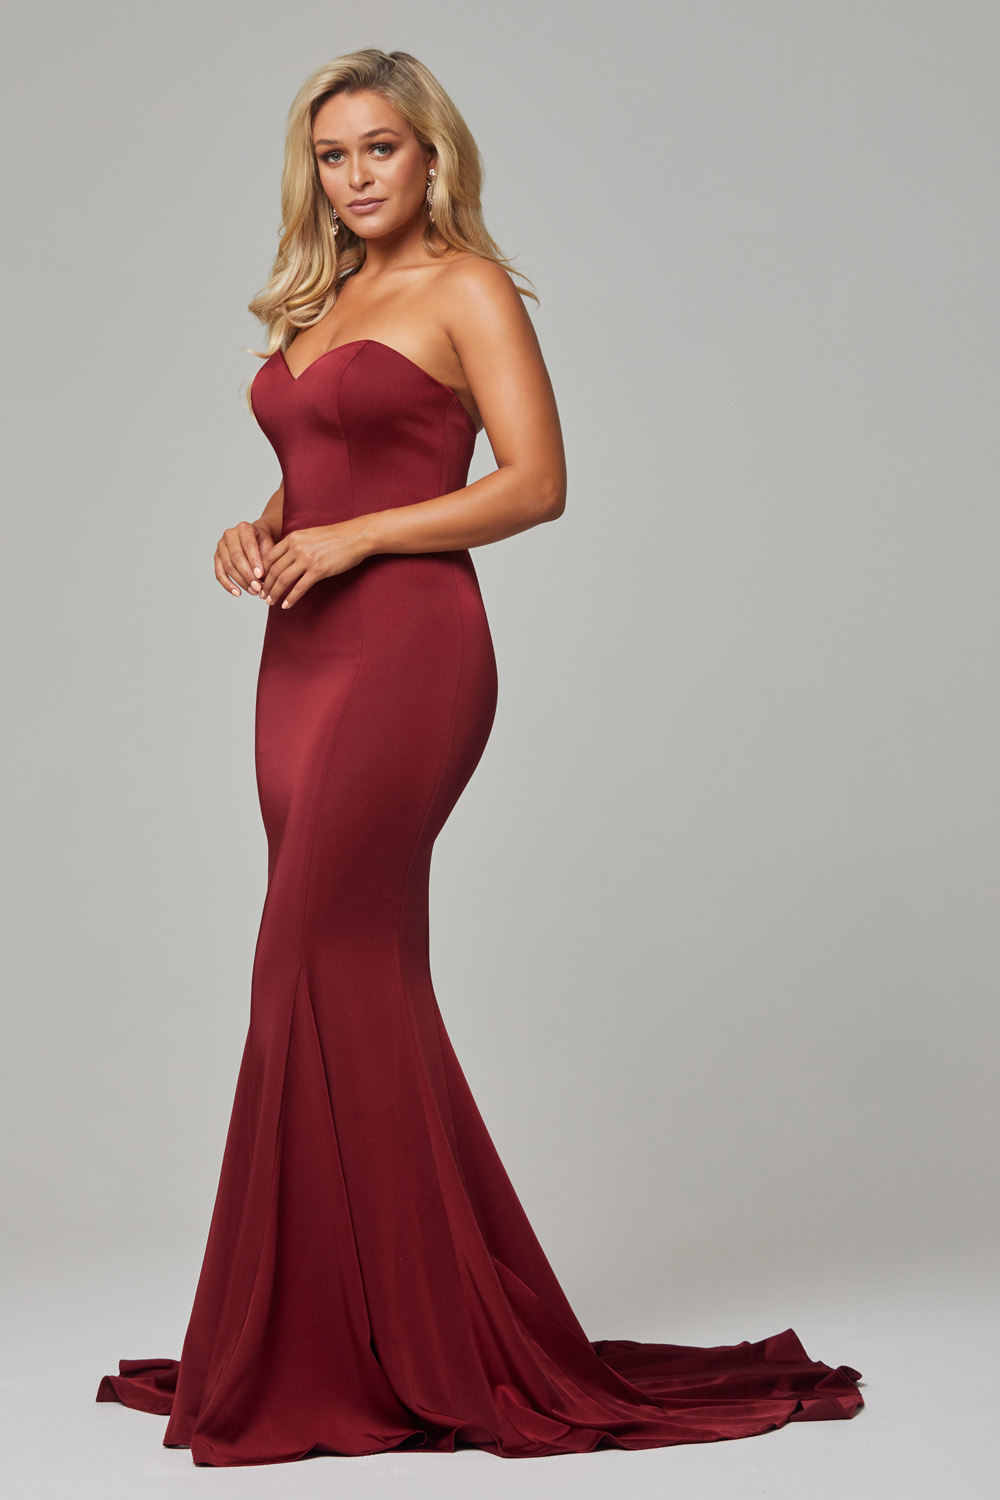 c504d5fc35bd Kiara strapless fitted sweetheart formal dress - Sentani Boutique